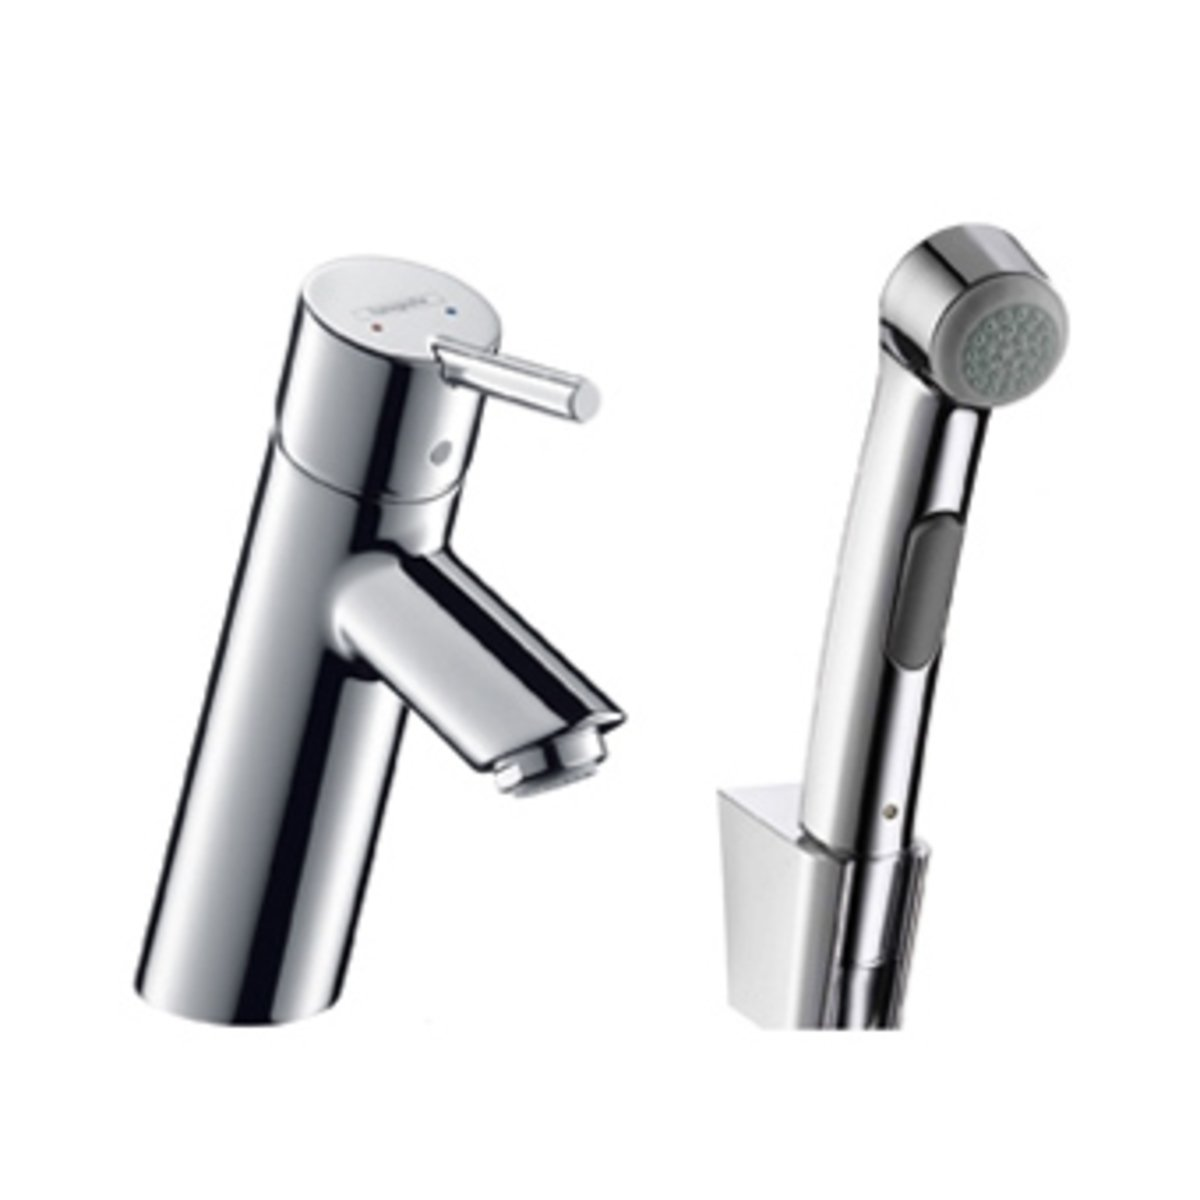 hansgrohe talis s2 wastafelkraan met bidetdouche chroom 32140000. Black Bedroom Furniture Sets. Home Design Ideas